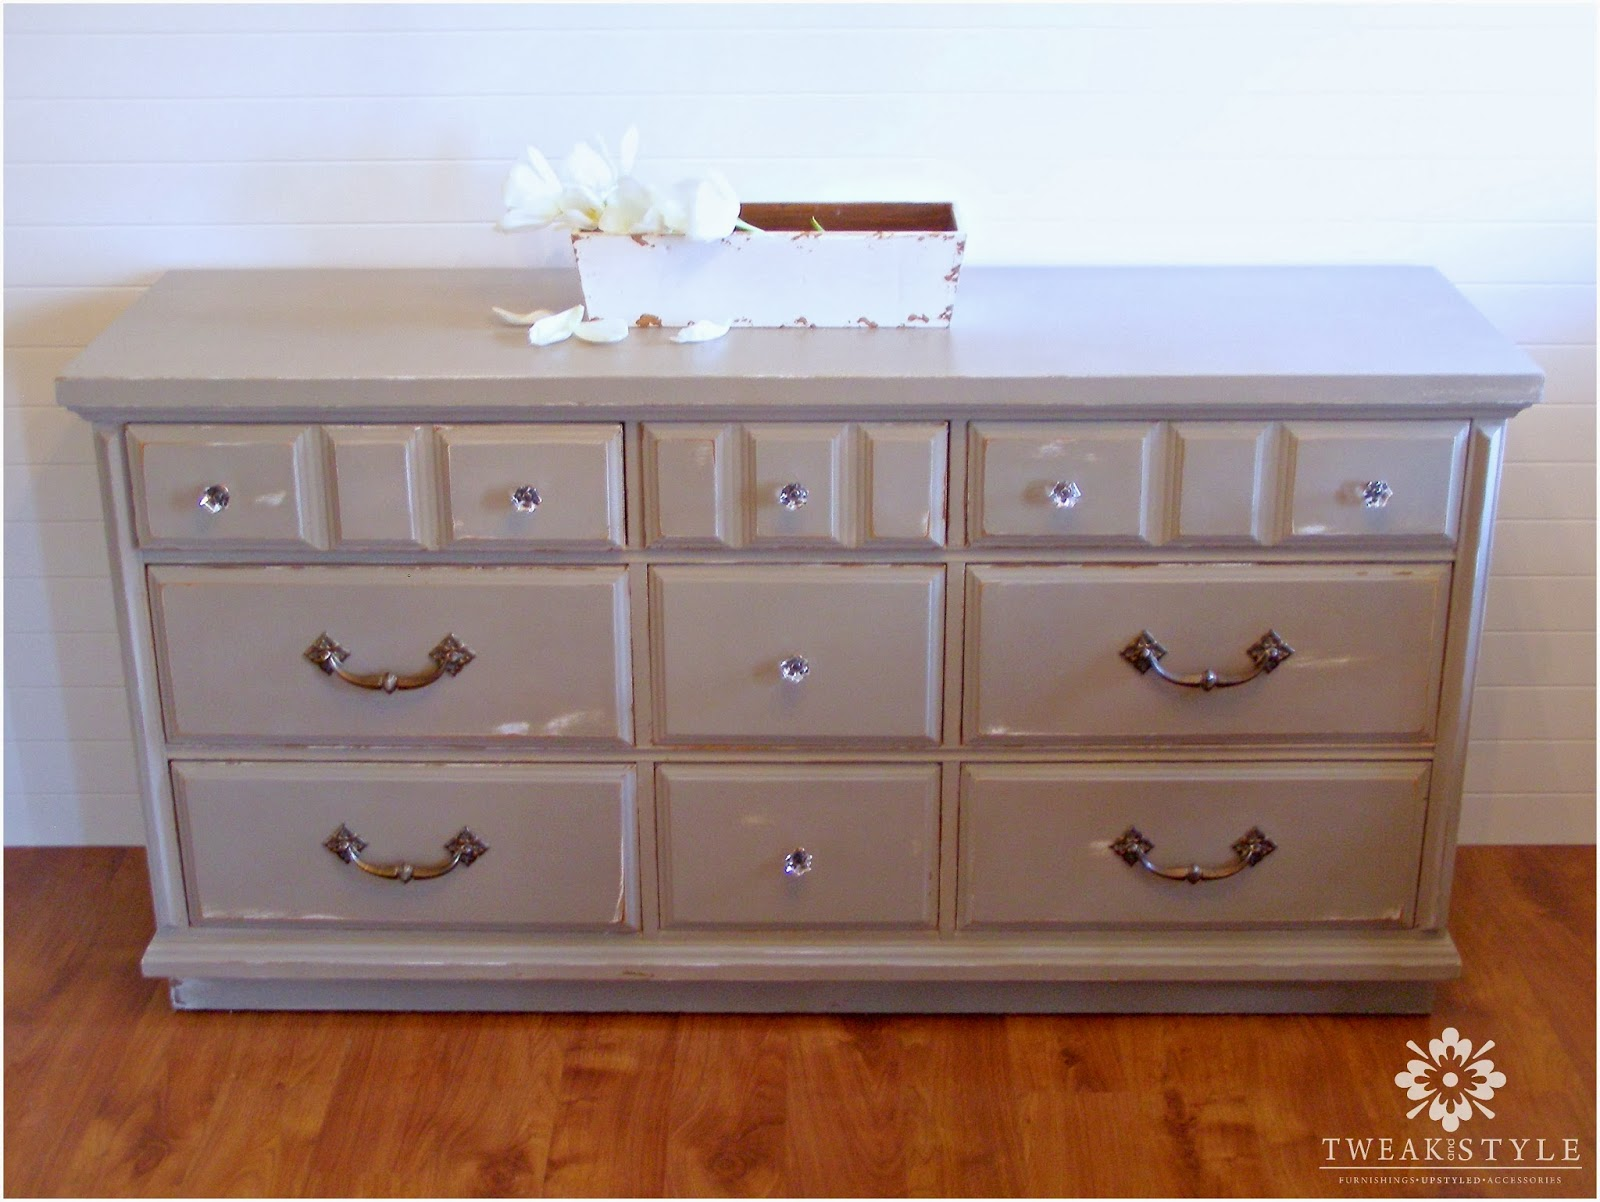 Tweak & Style Blog: Product Reviews: Annie Sloan Chalk Paint